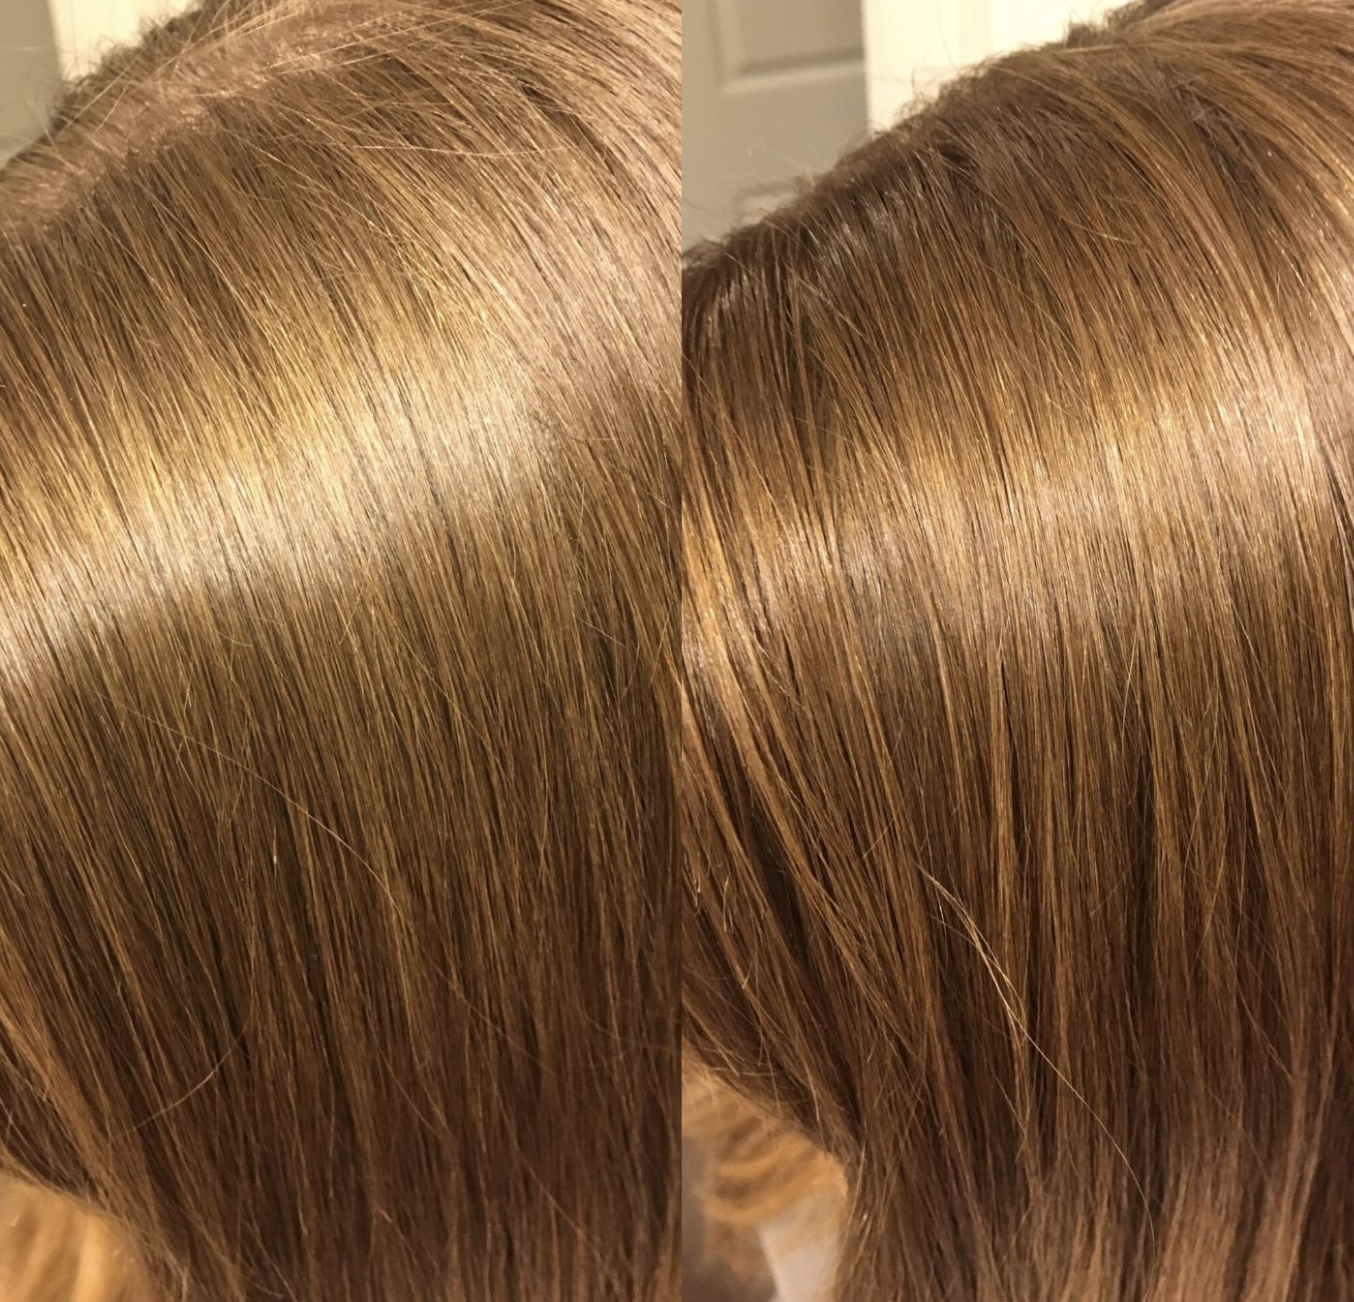 a before-and-after image of straight light brown hair with the picture on the right looking slightly more shiny